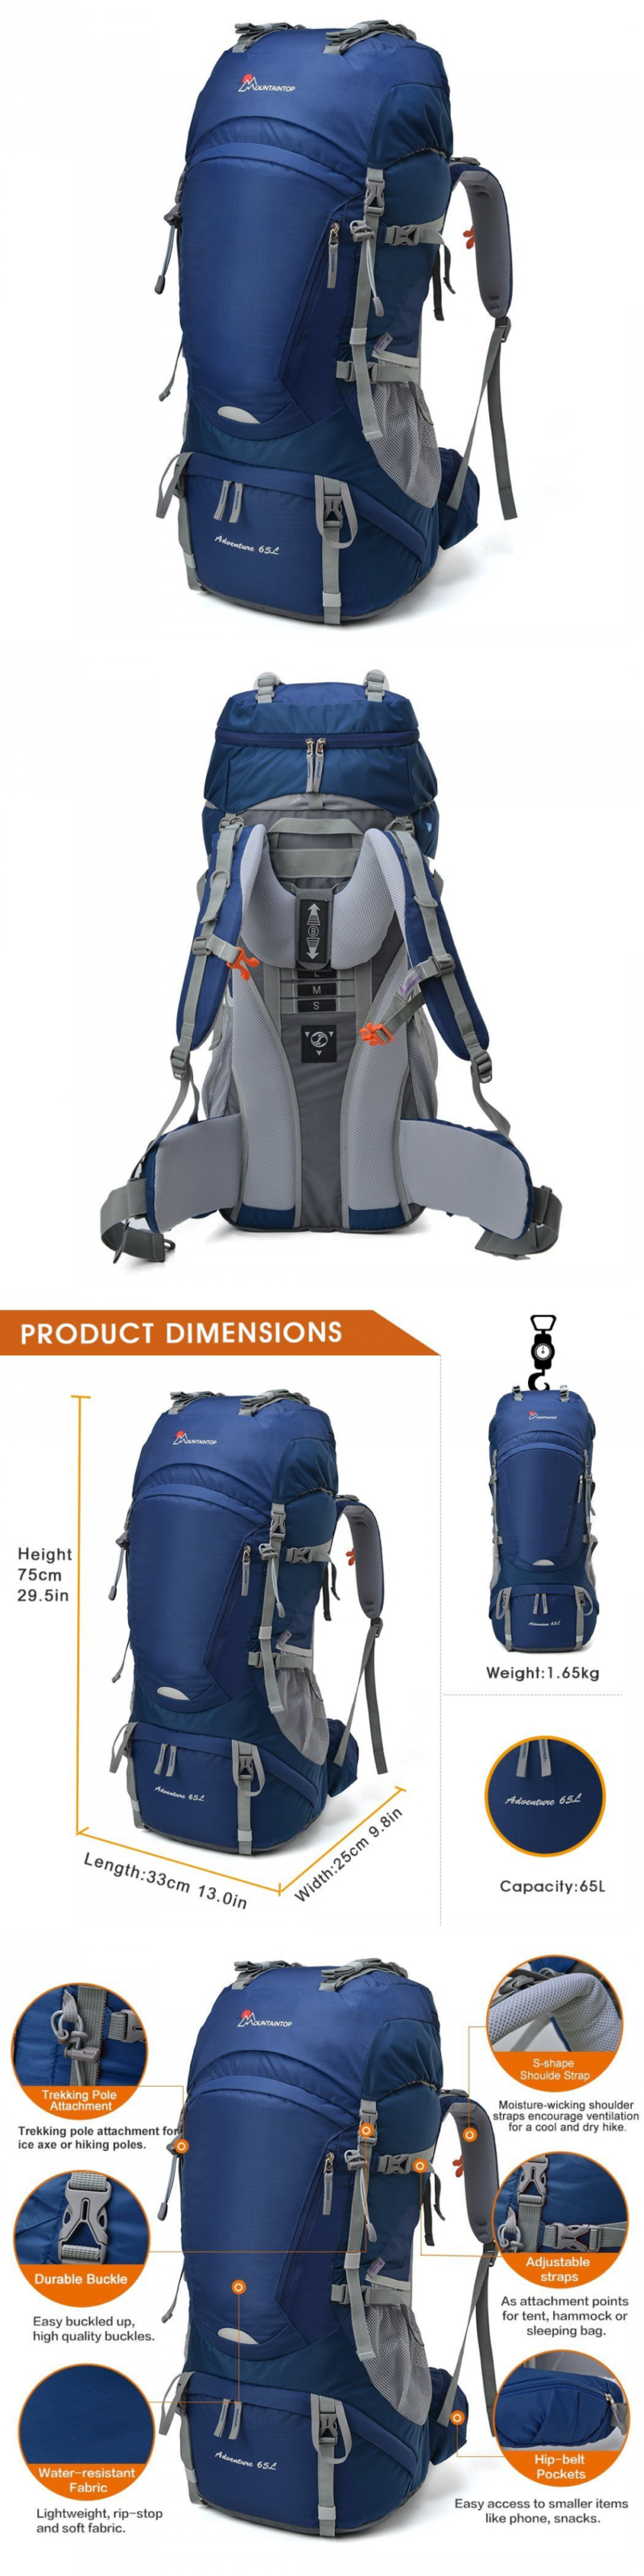 Day Packs 87122  New Mountaintop 65L Internal Frame Backpack  Water-Resistant With Rain Cover d09e02206e